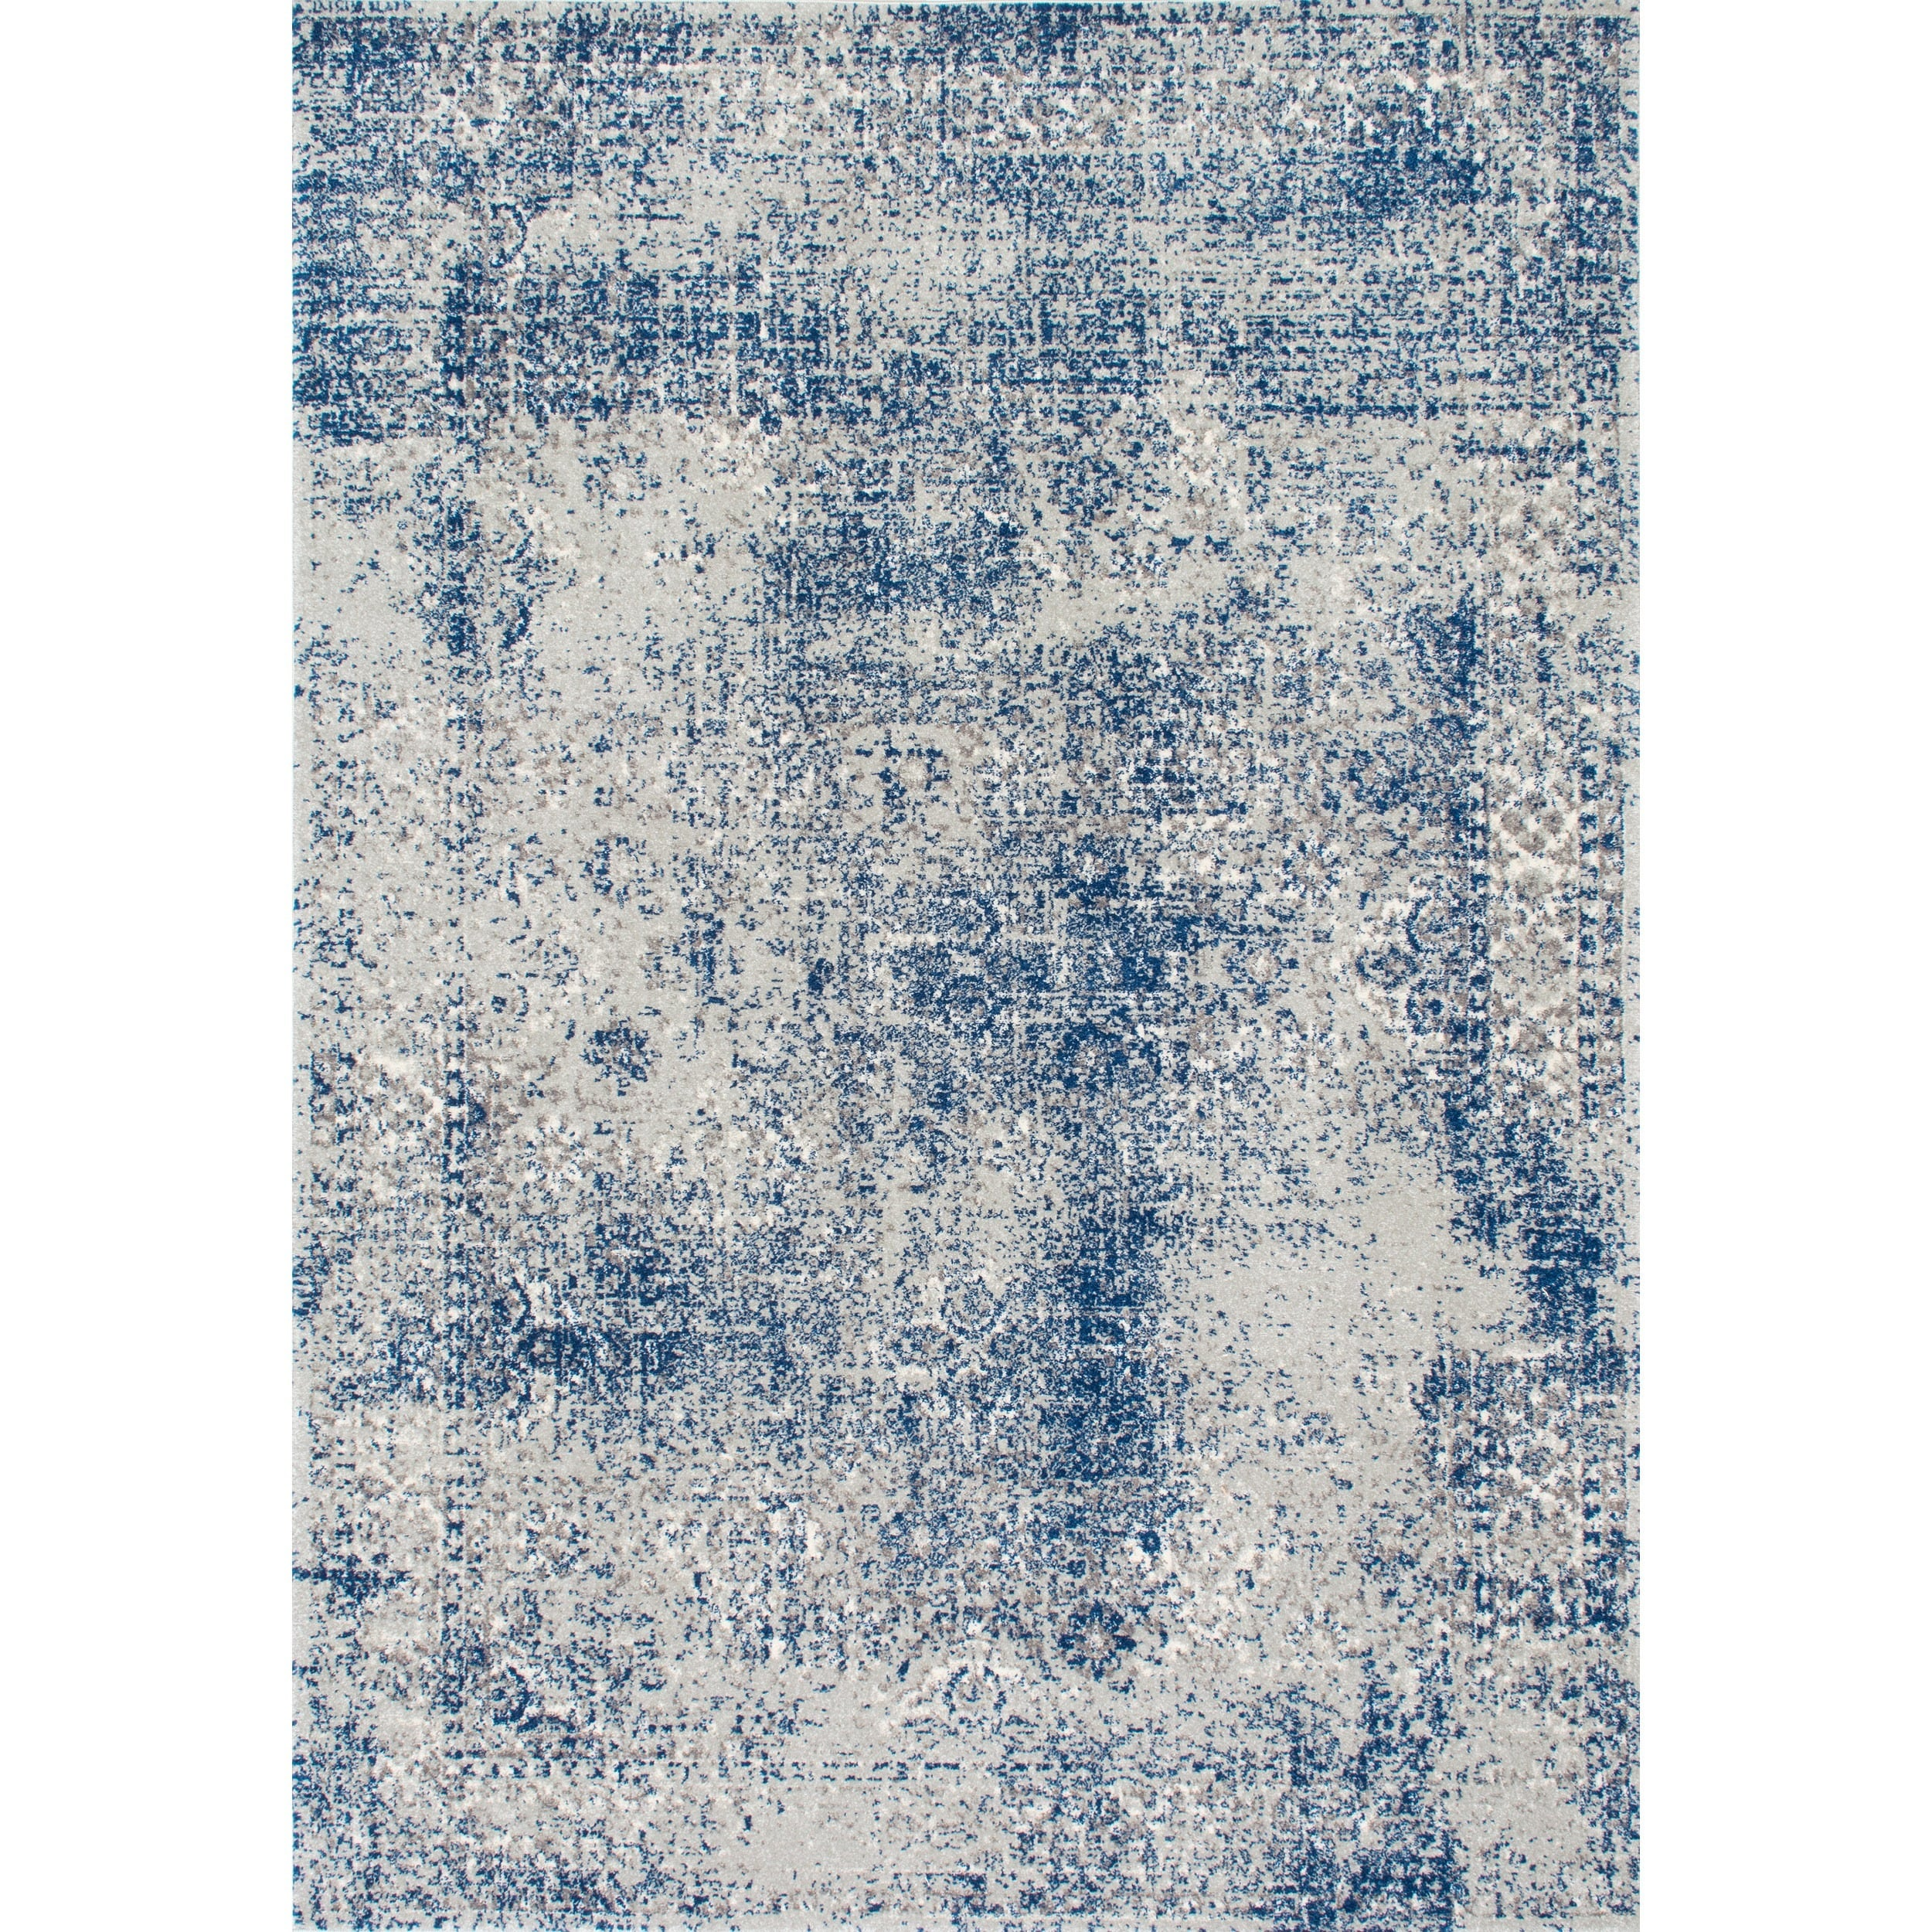 Nuloom Vintage Distressed Blue Rug 8 X 10 On Free Shipping Today 12135000